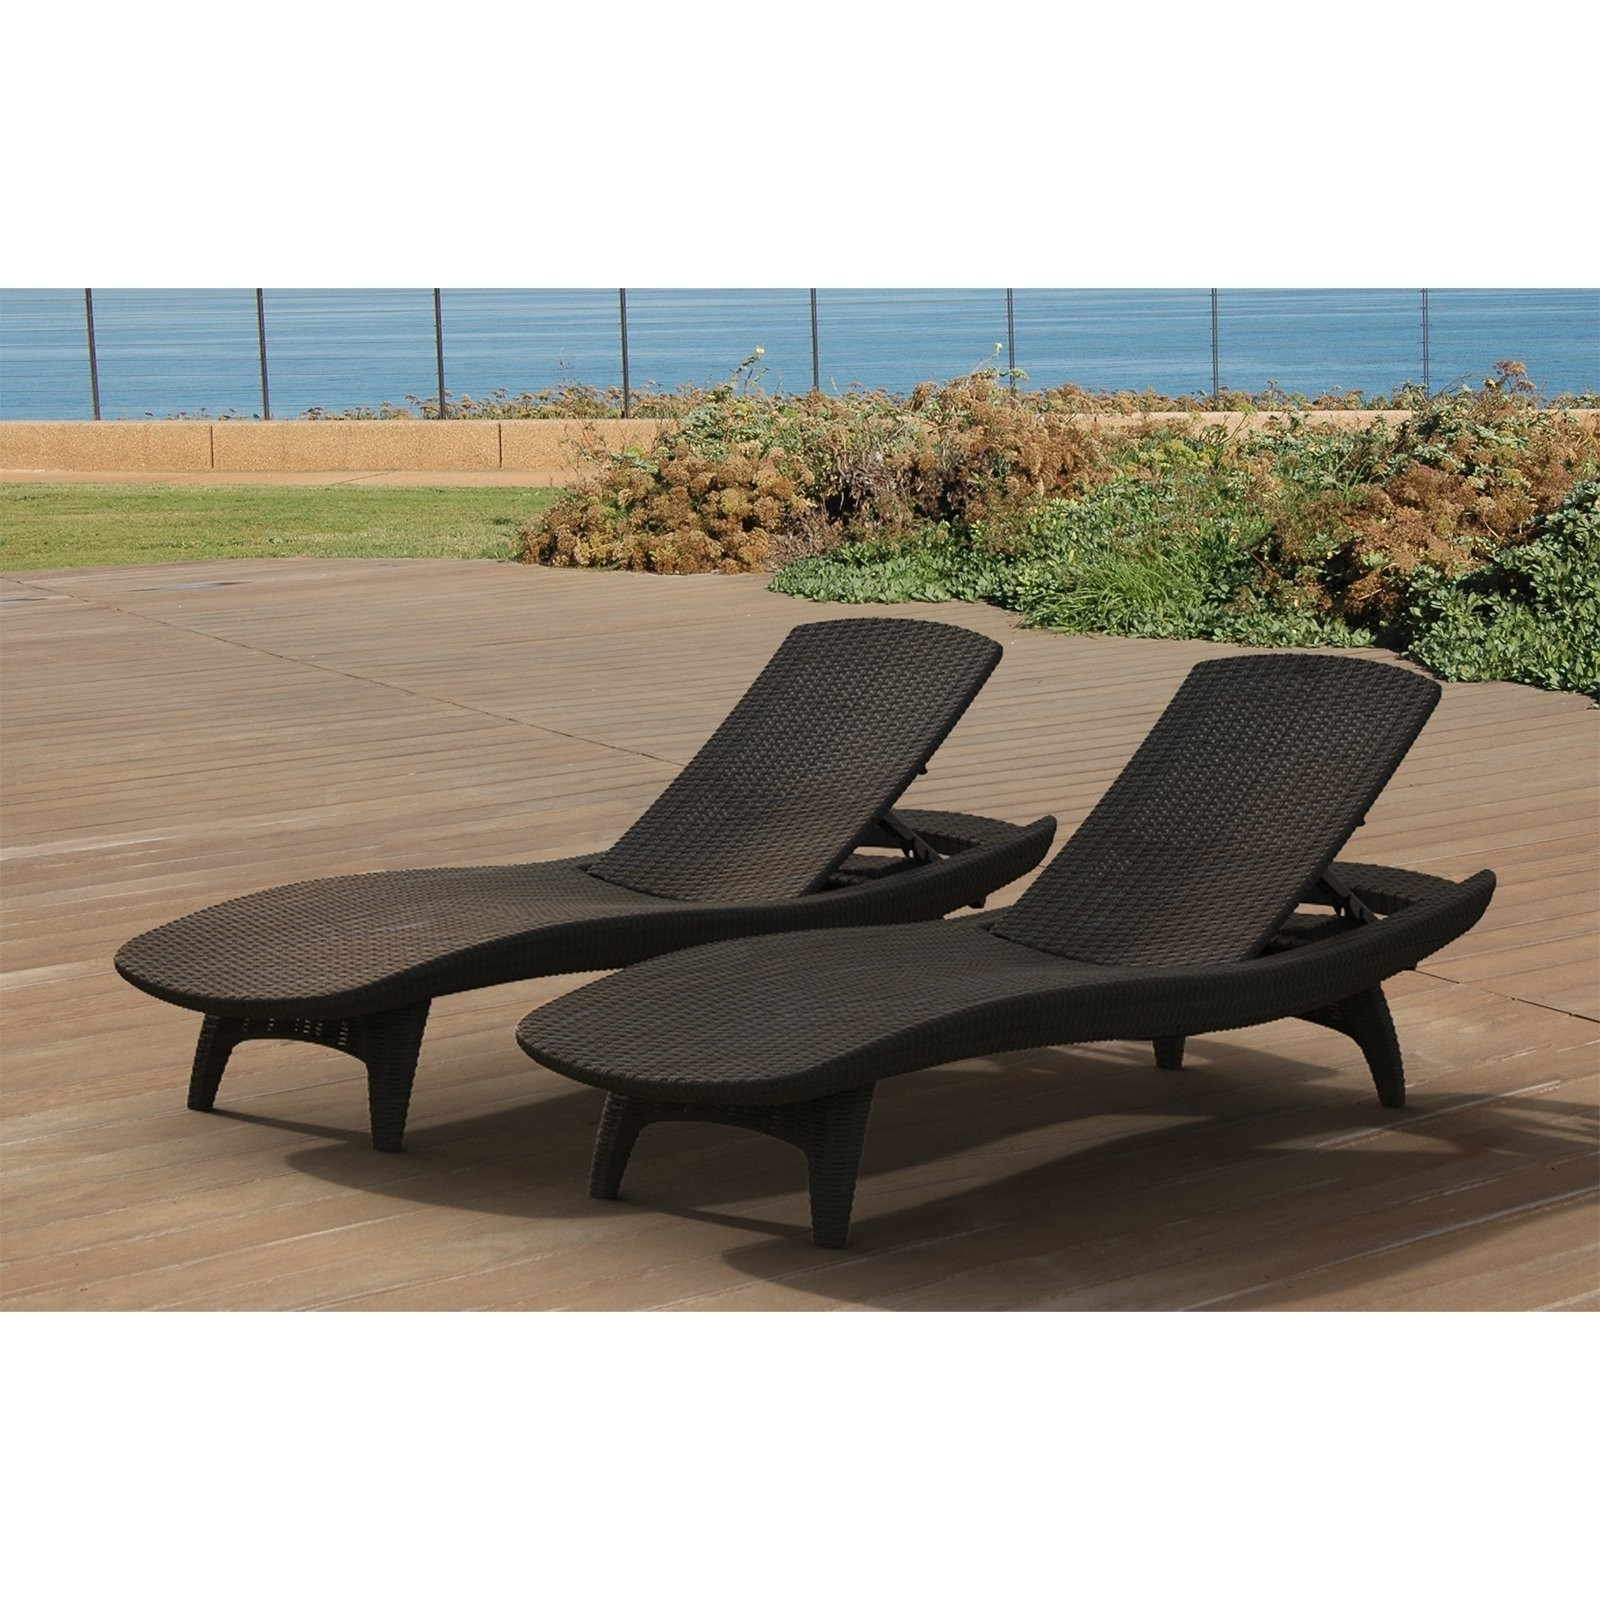 Furniture : Leather Chaise Lounge Nz Chaise Lounge Jysk Office In Preferred Chaise Lounge Chairs Under $ (View 11 of 15)